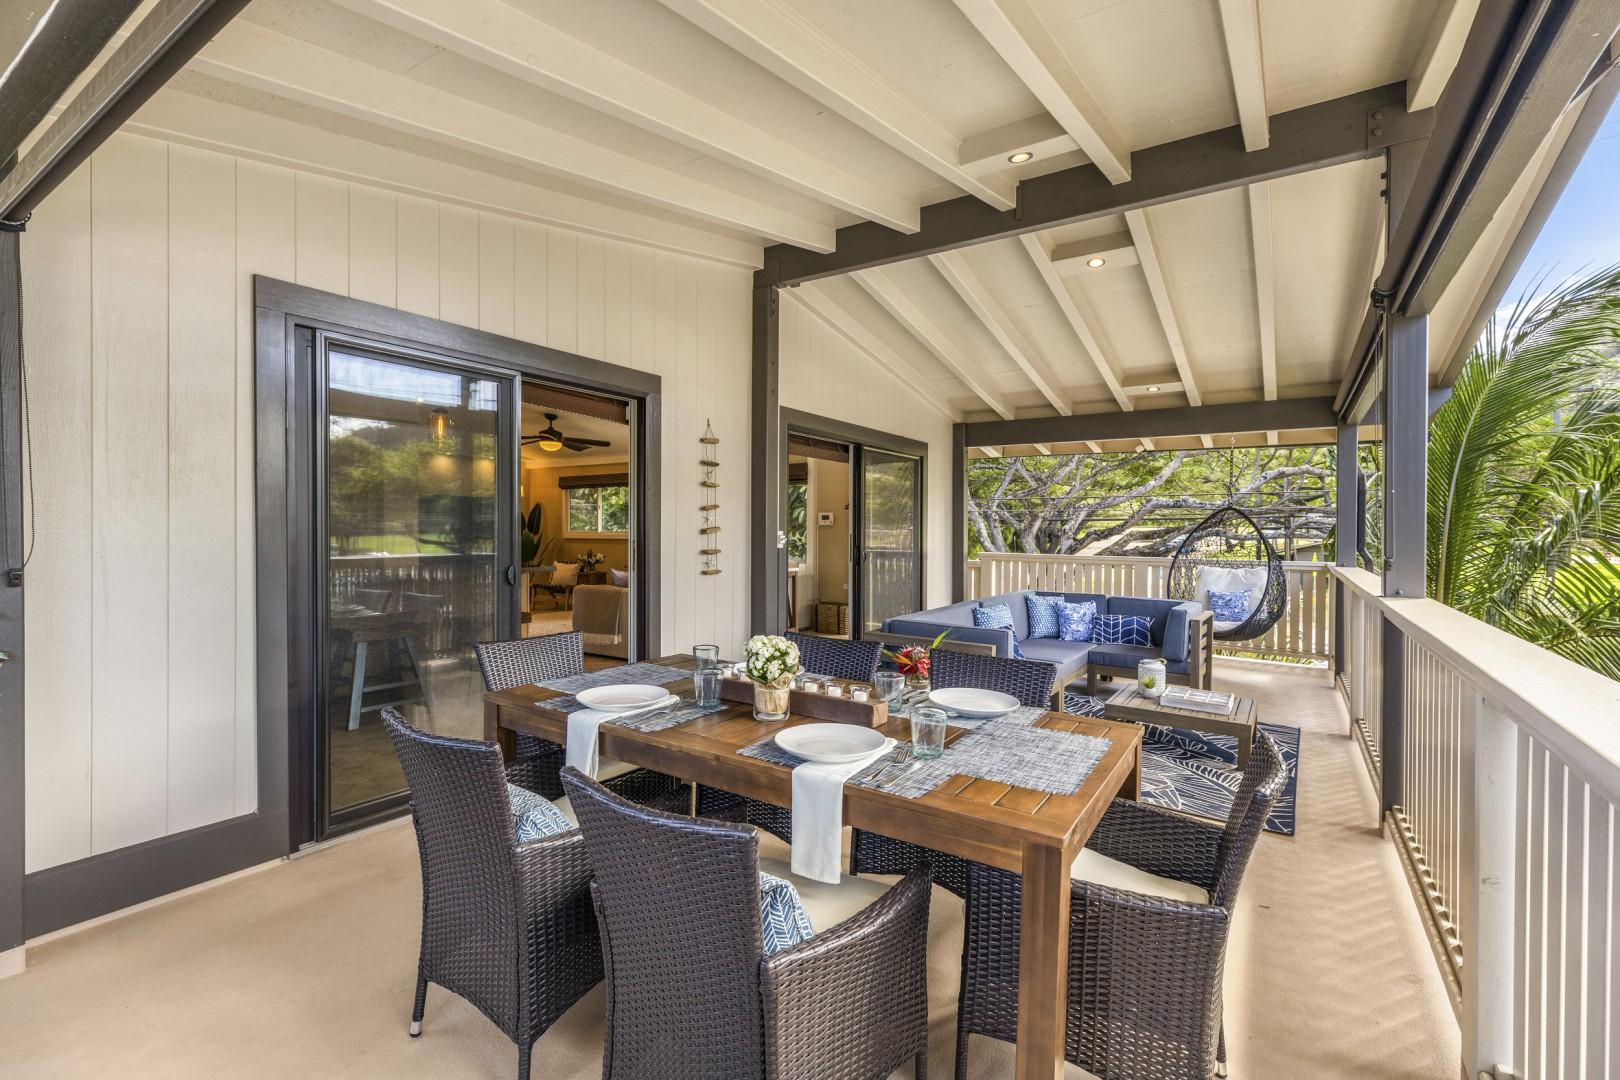 Upstairs lanai with barbecue grill, dining area, and lounge area